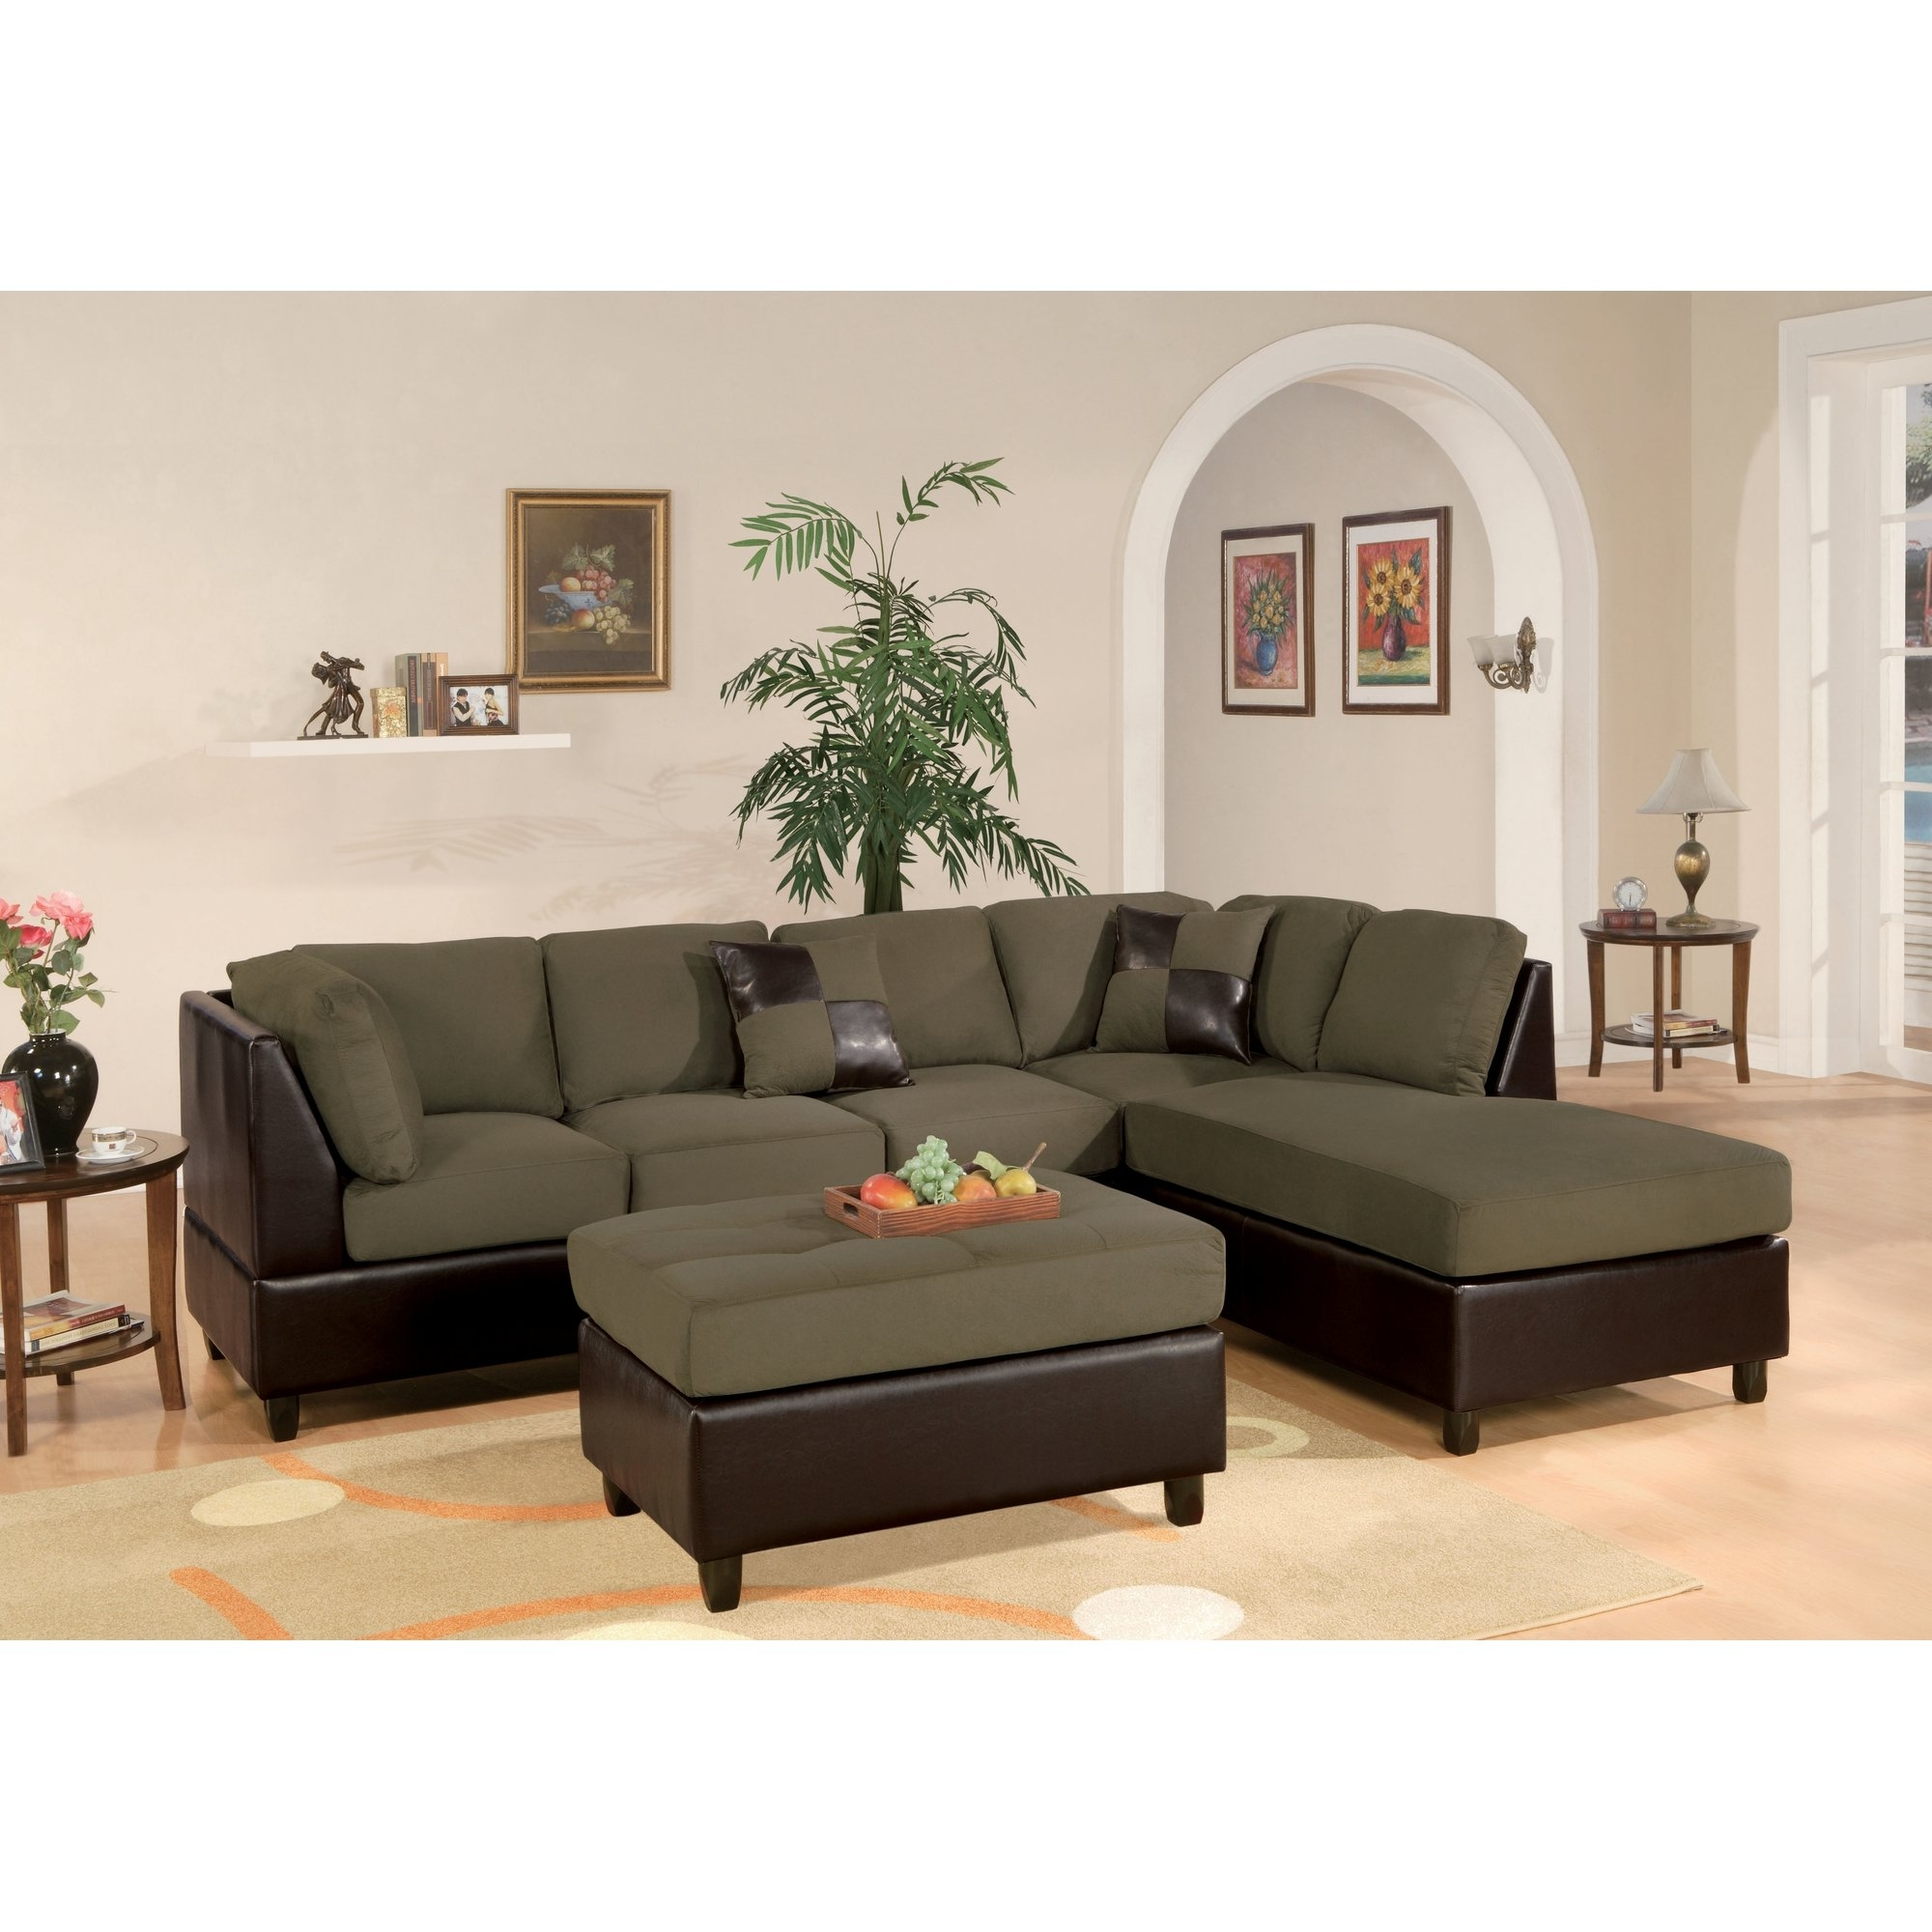 Most Popular 80x80 Sectional Sofas With Furniture : Best Sectional Couch 2015 Large Sectional Sofas Uk (View 7 of 20)